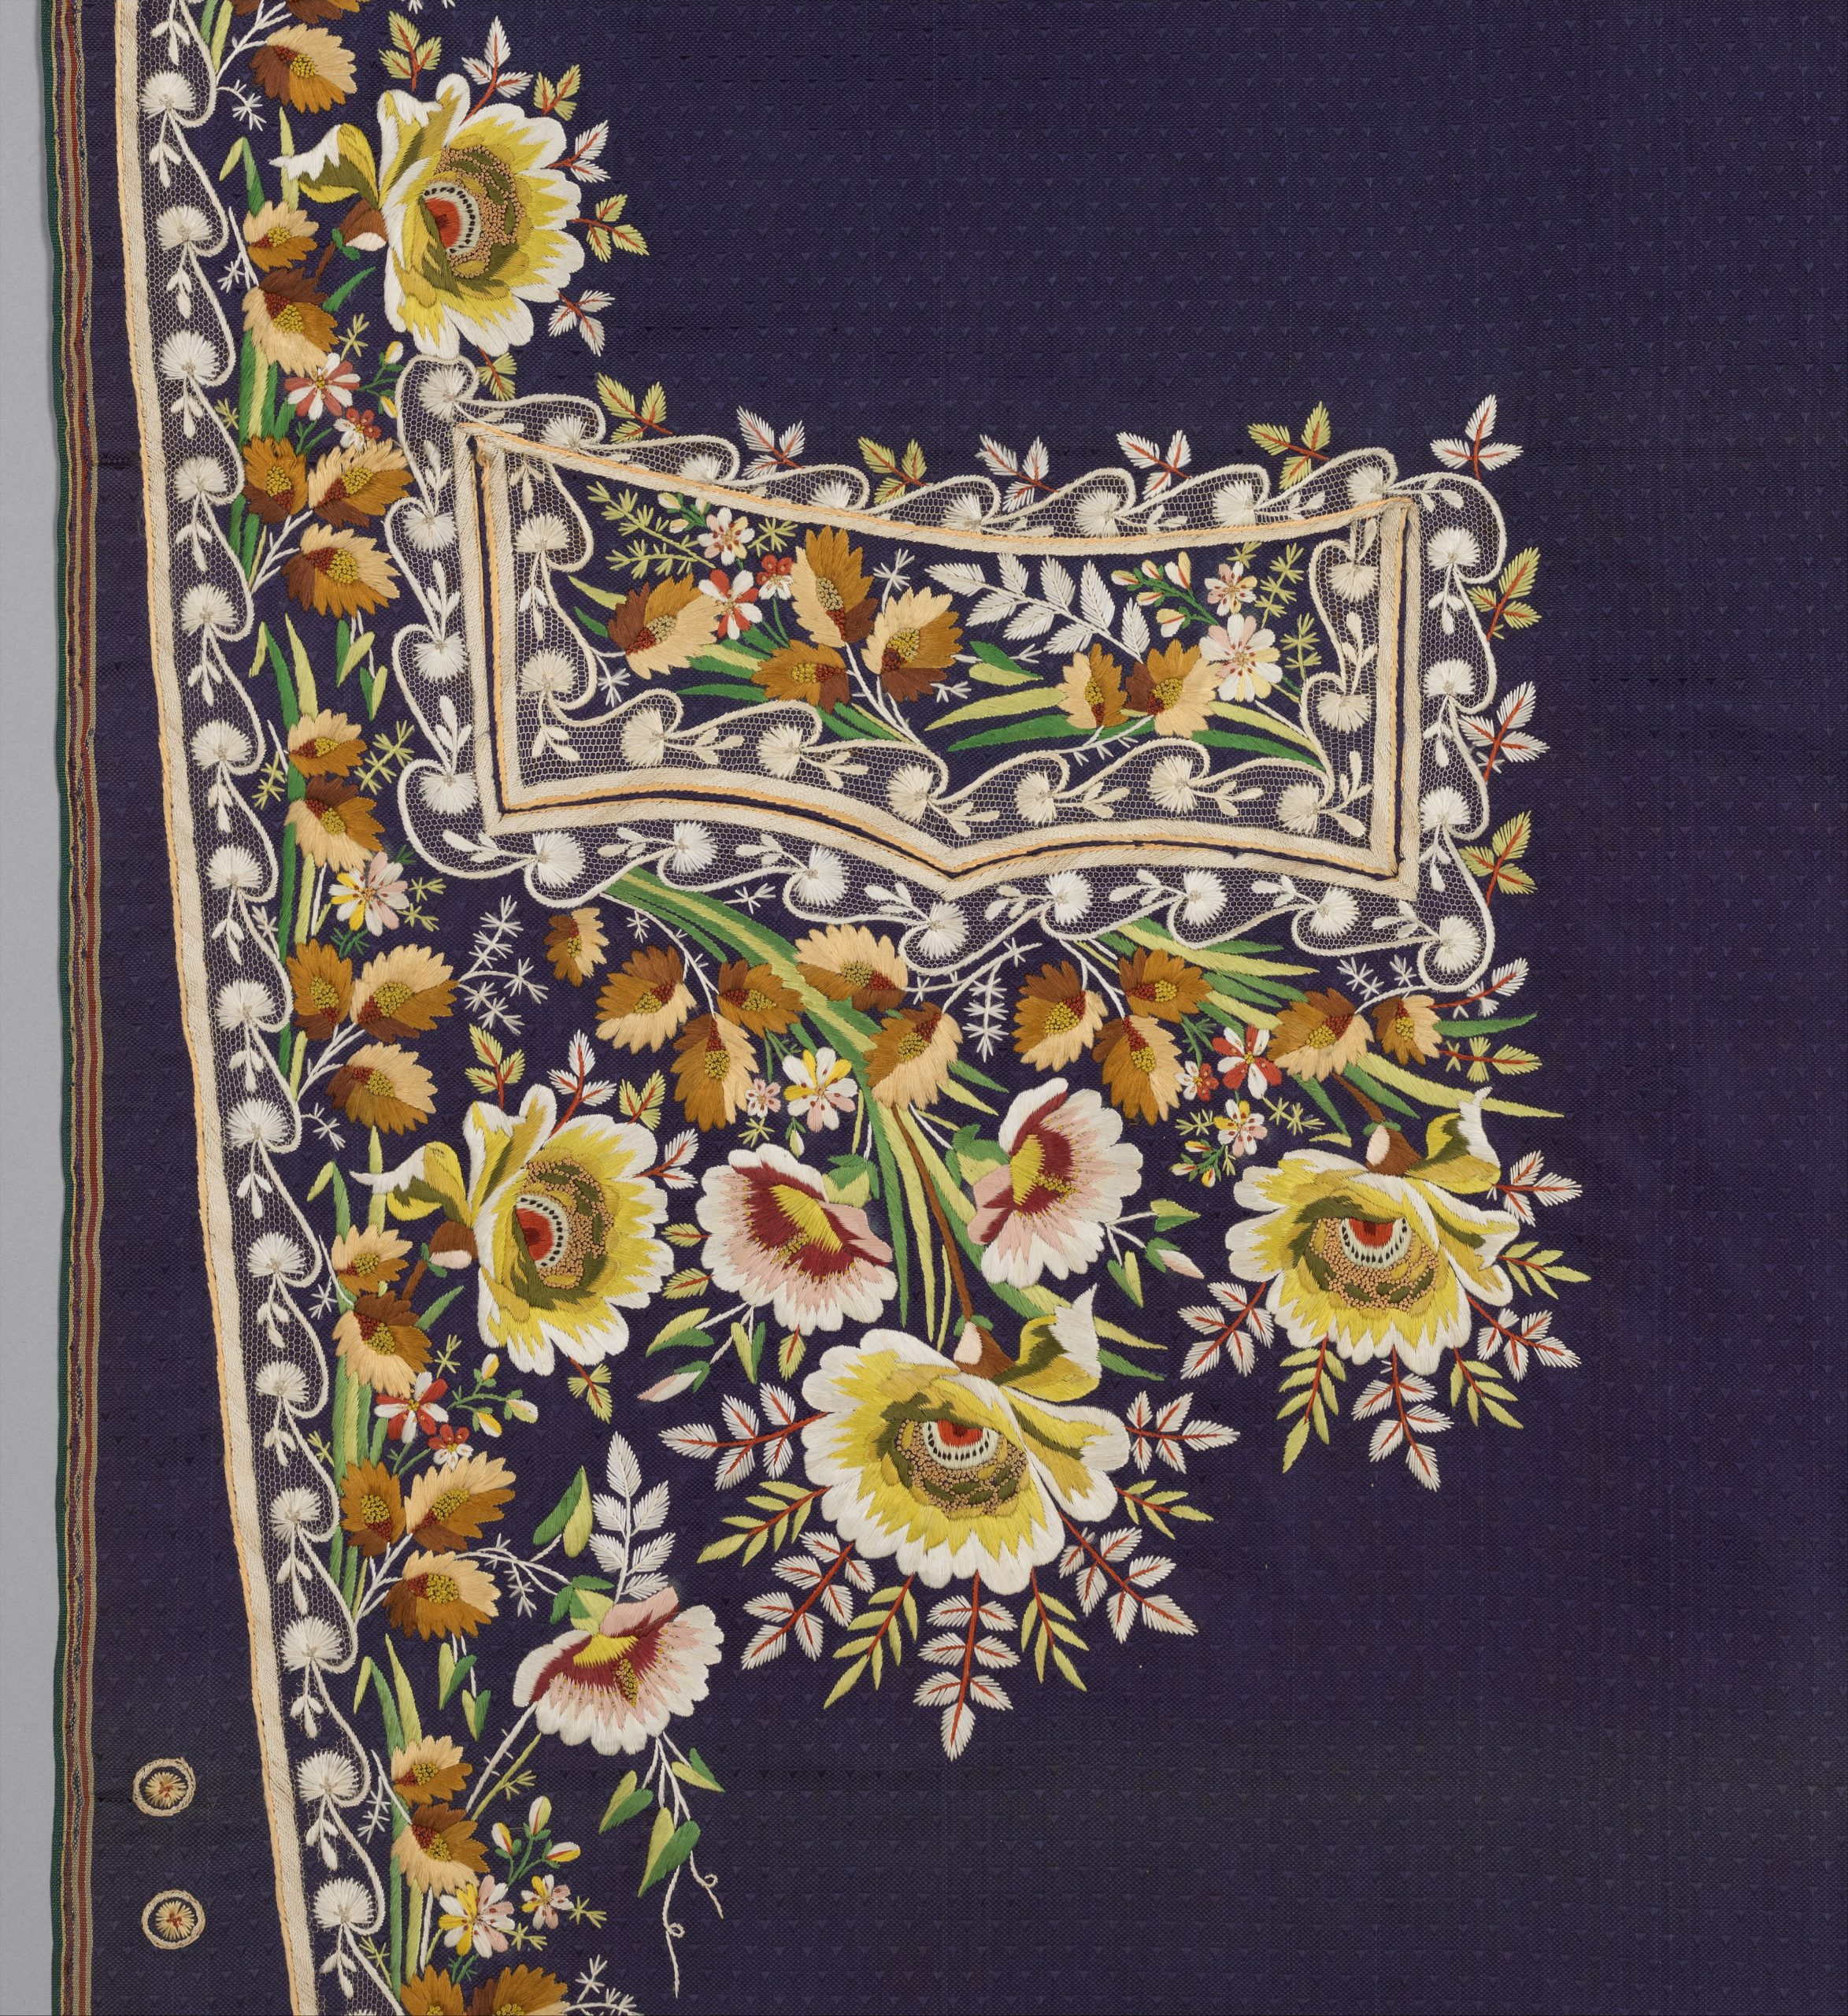 Embroidered panels for a man's suit, 1780s, French,  Silk embroidery on woven silk, satin stitch; stem stitch, knots and silk net; Length: 45 1/4 in. (114.9 cm); Length: 45 in. (114.3 cm); Length: 48 1/2 in. (123.2 cm); Length: 49 in. (124.5 cm) Length: 20 1/2 in. (52.1 cm) Other (selvage to selvage): 22 1/4 in. (56.5 cm)